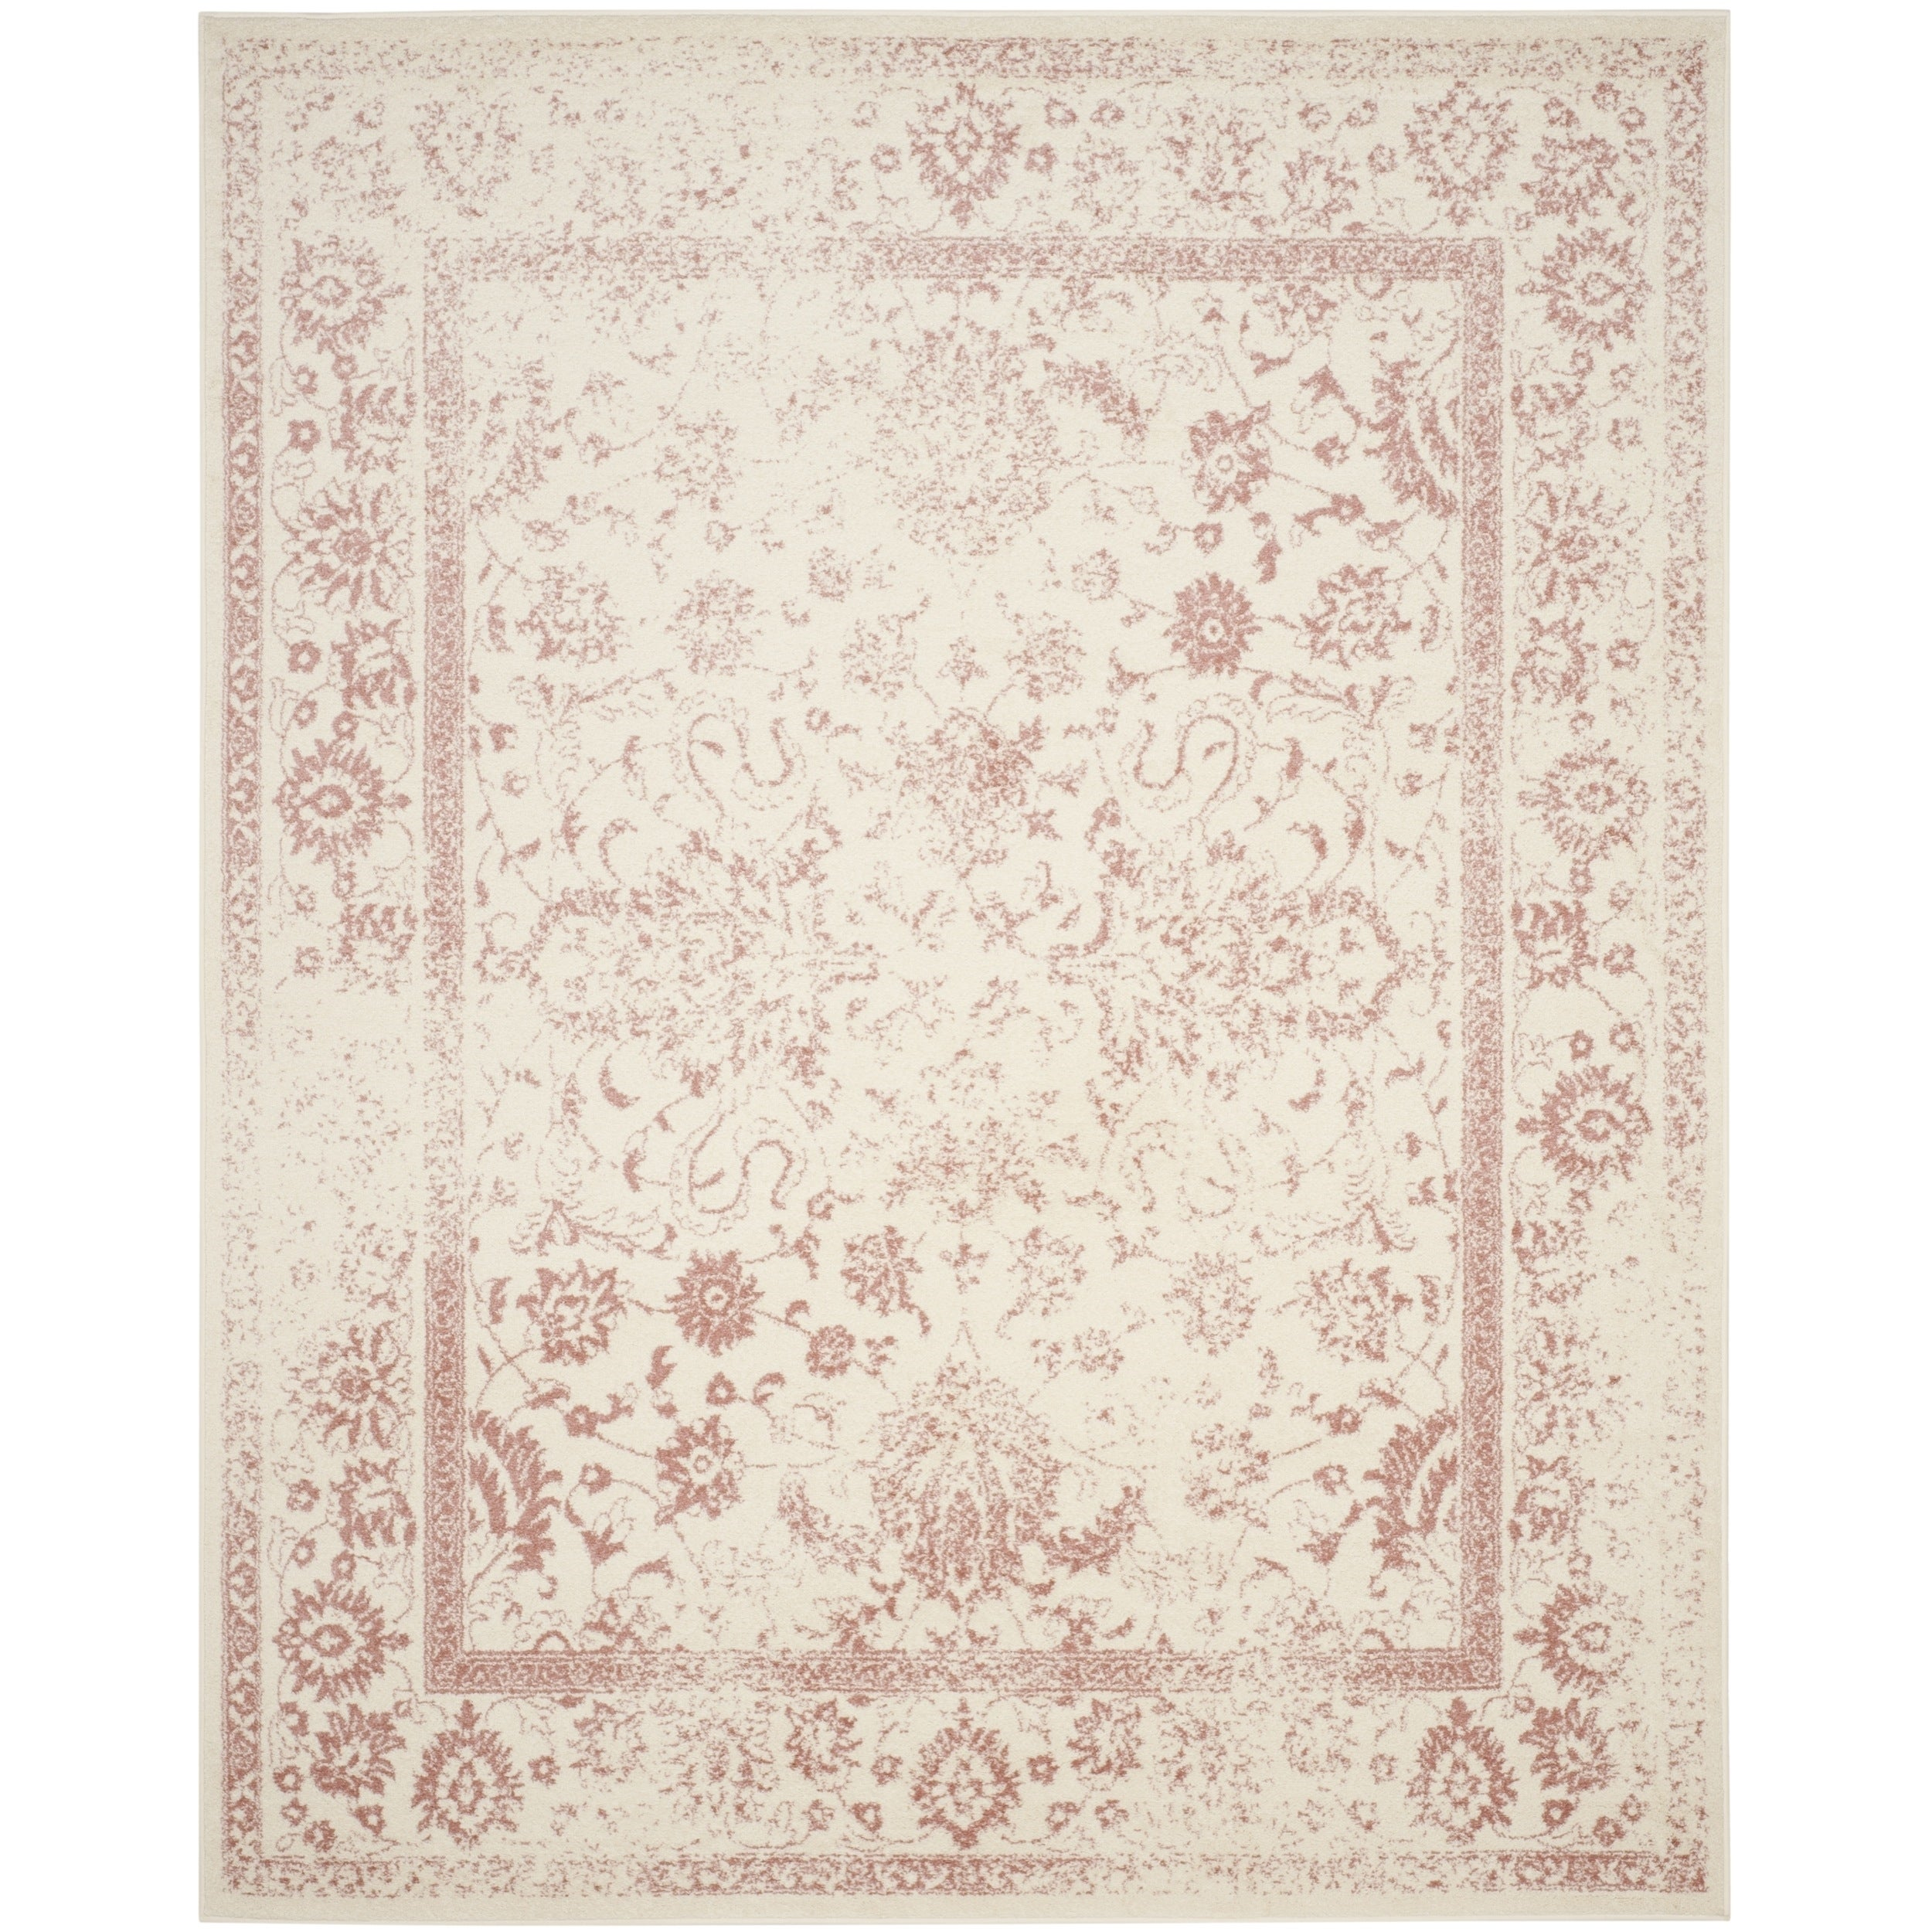 Safavieh Adirondack Vintage Distressed Ivory / Rose Rug (9' x 12') - Free  Shipping Today - Overstock.com - 18659701